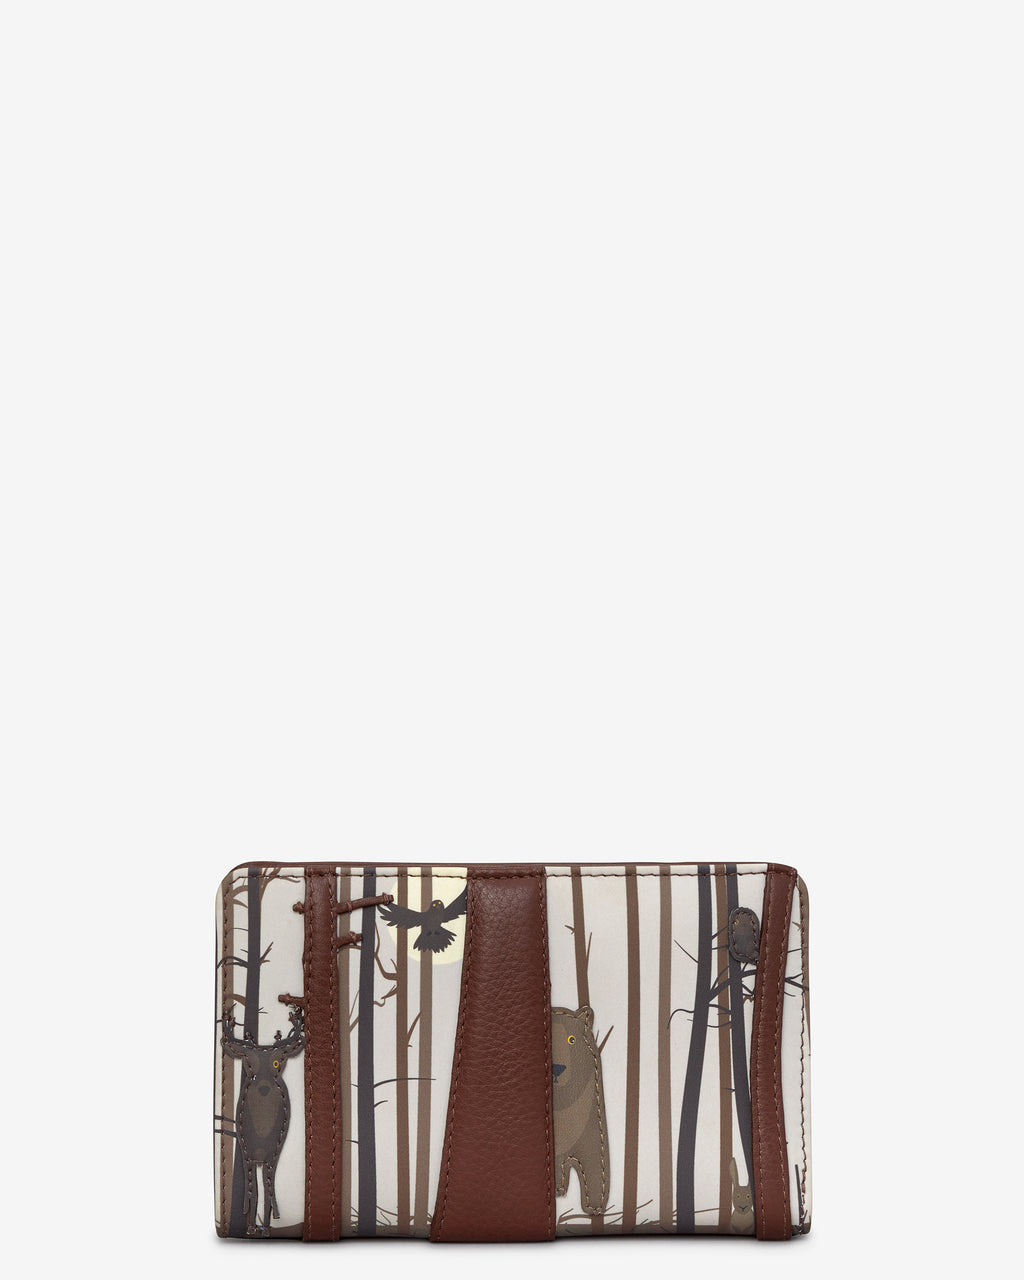 Into the Wild Flap Over Zip Around Leather Purse